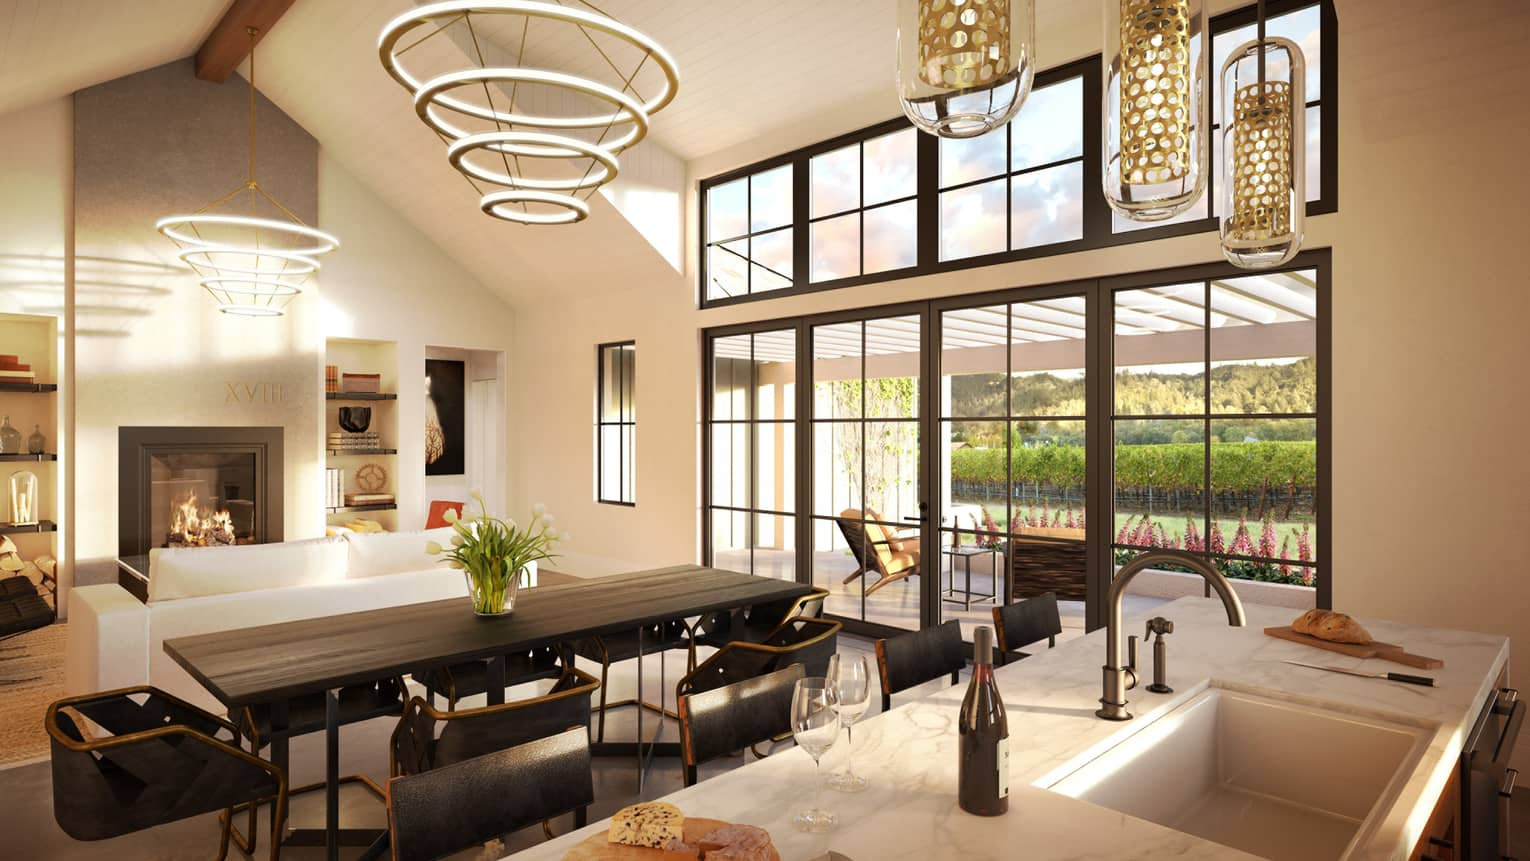 Modern lights, chandeliers over dining table, modern kitchen counter with cheese board, wine